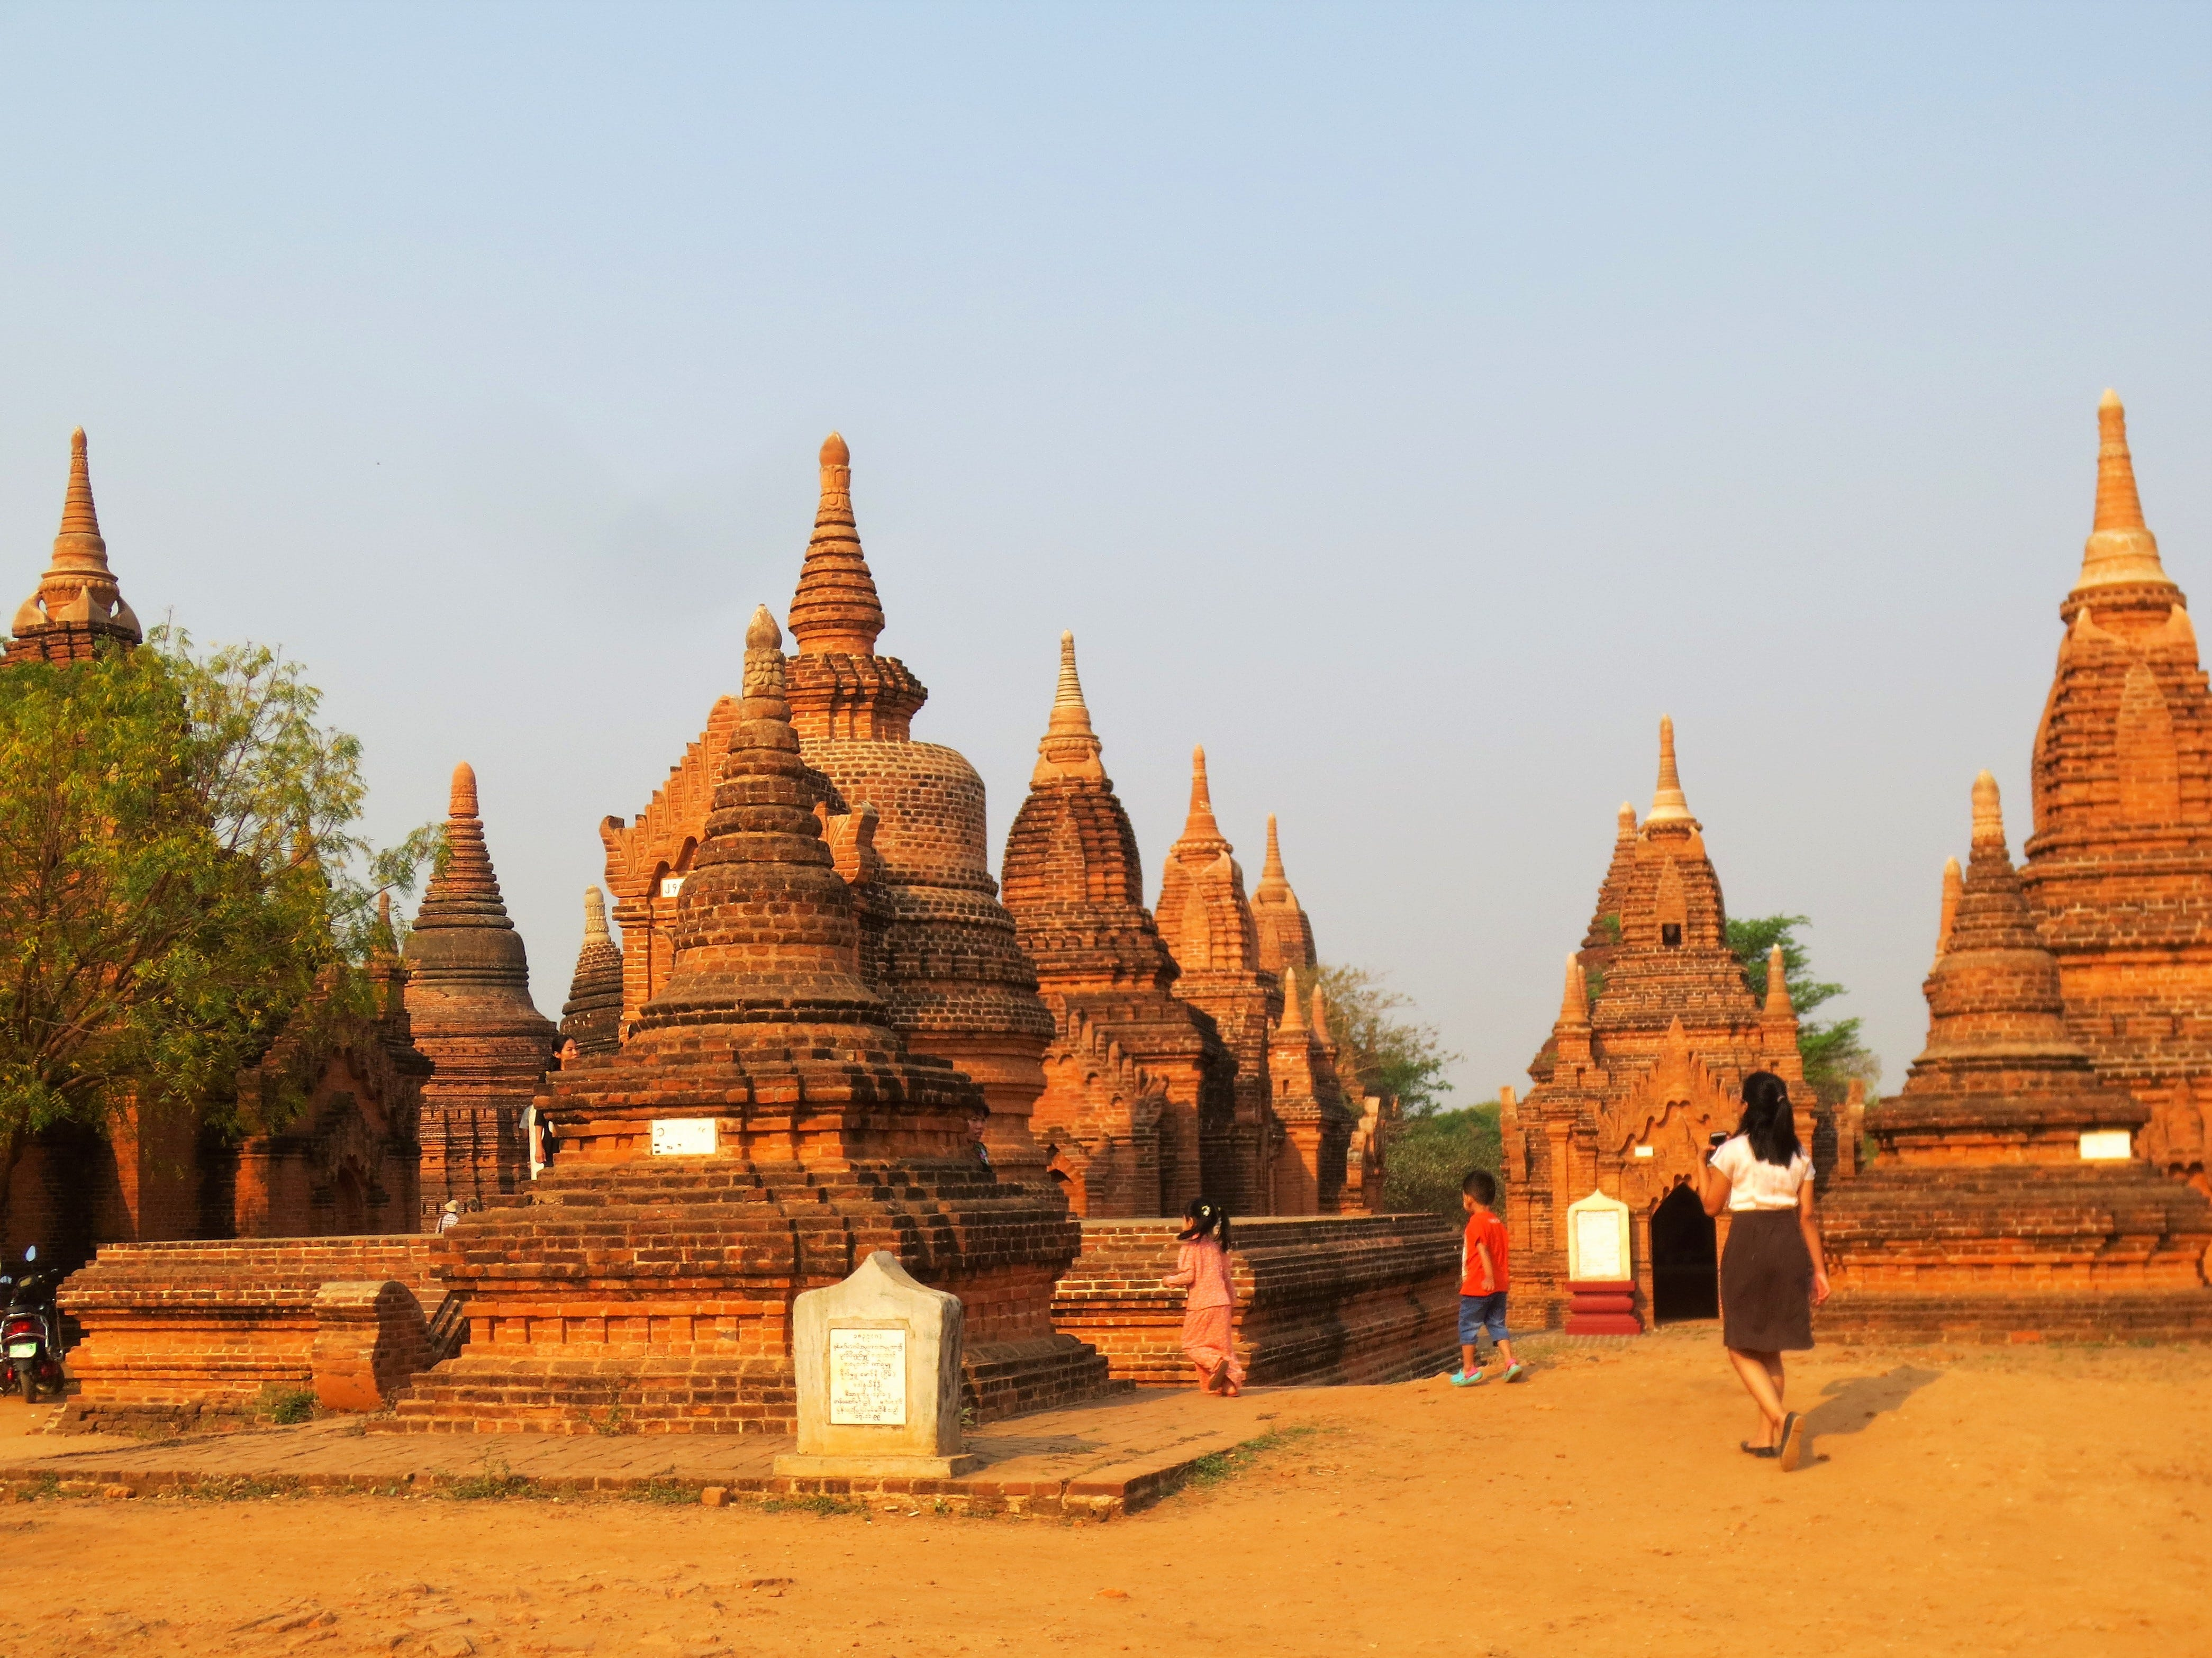 The archaeological site in Bagan, Myanmar, features more than 2,200 Buddhist shrines, some dating back 1,000 years.